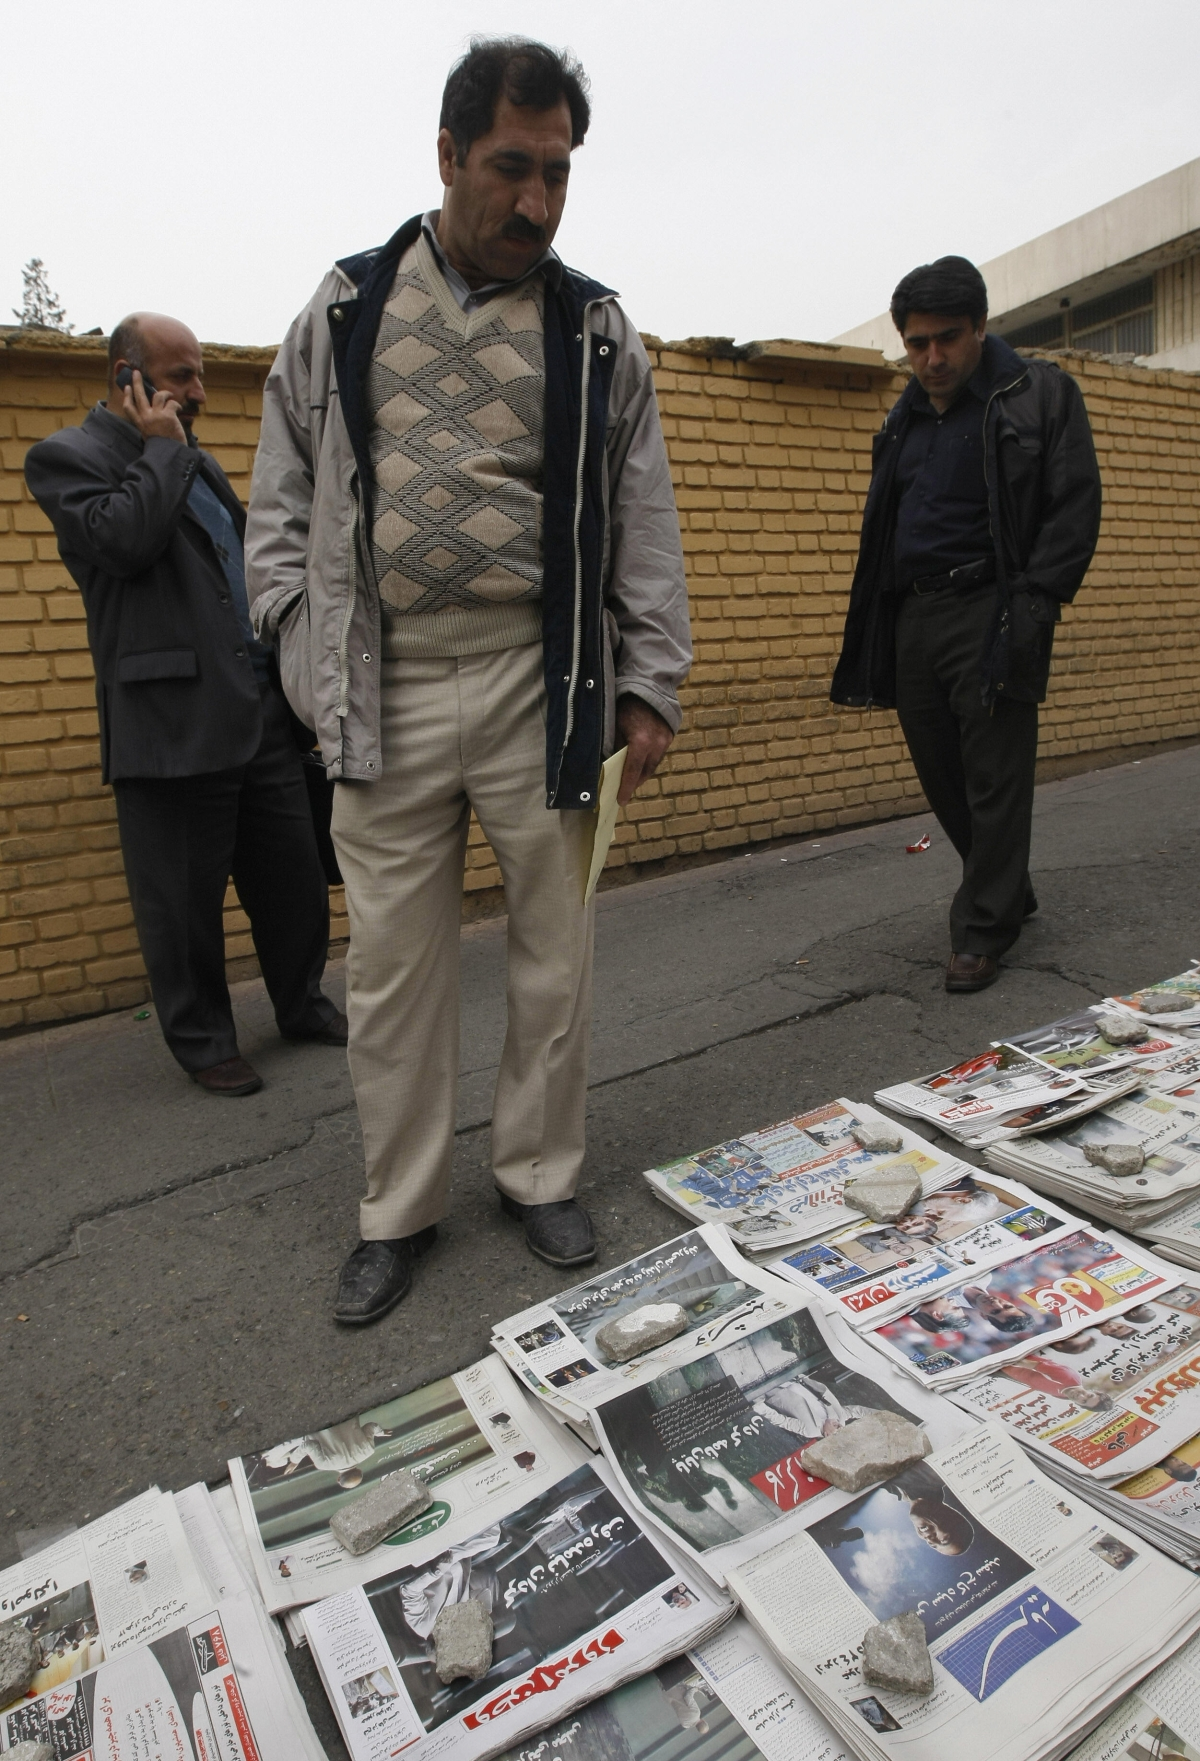 Iranian men look at newspapers bearing news and pictures of US elected president Barack Obama in Tehran on November 5, 2008. (BEHROUZ MEHRI/AFP/Getty Images)